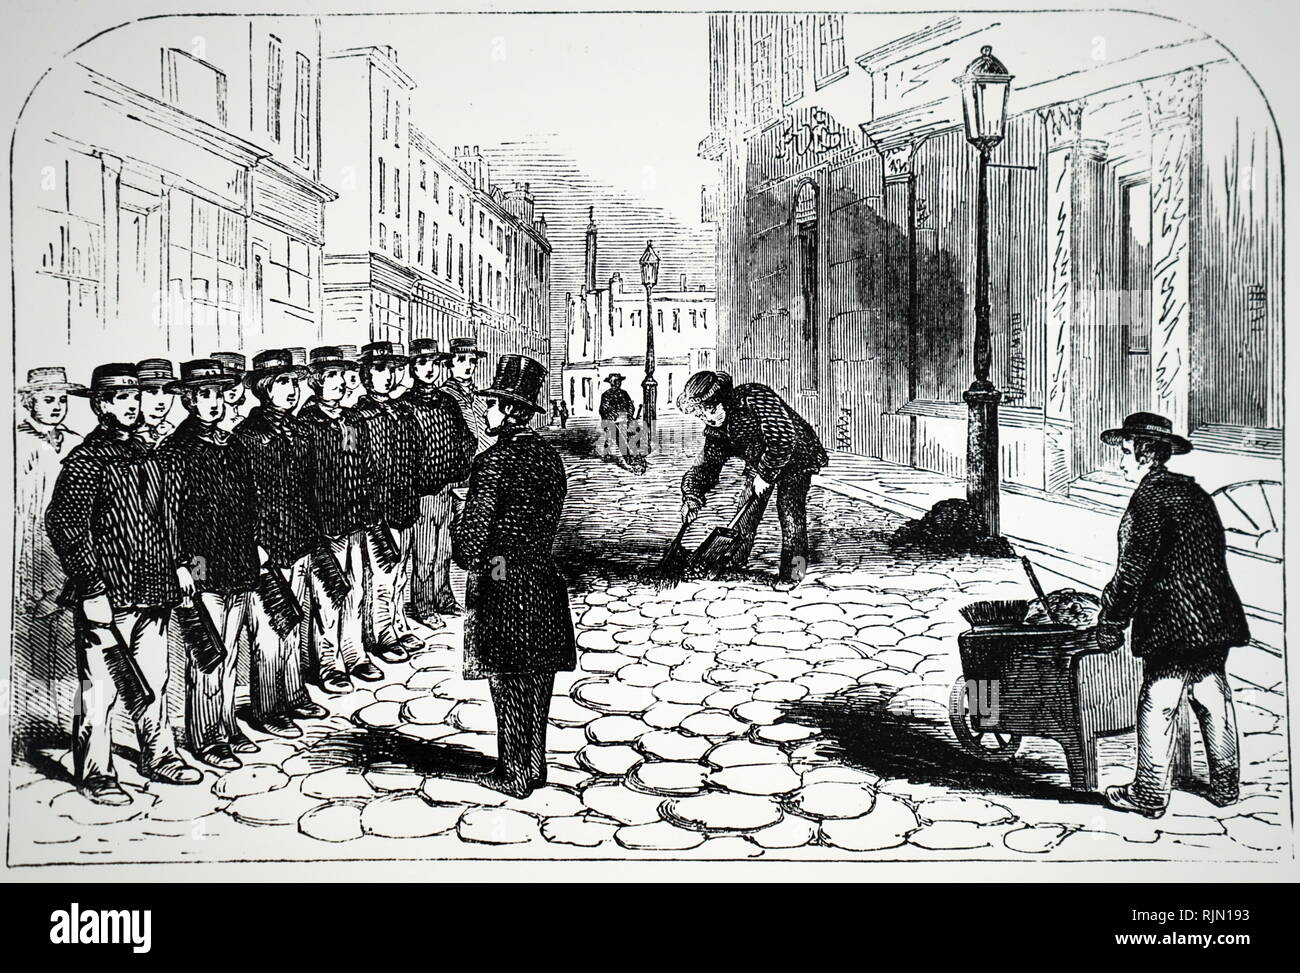 Illustration showing London street orderlies being inspected before setting off on their rounds. From Henry Mayhew 'London Labour and the London Poor' Vol. II, London, 1861 - Stock Image